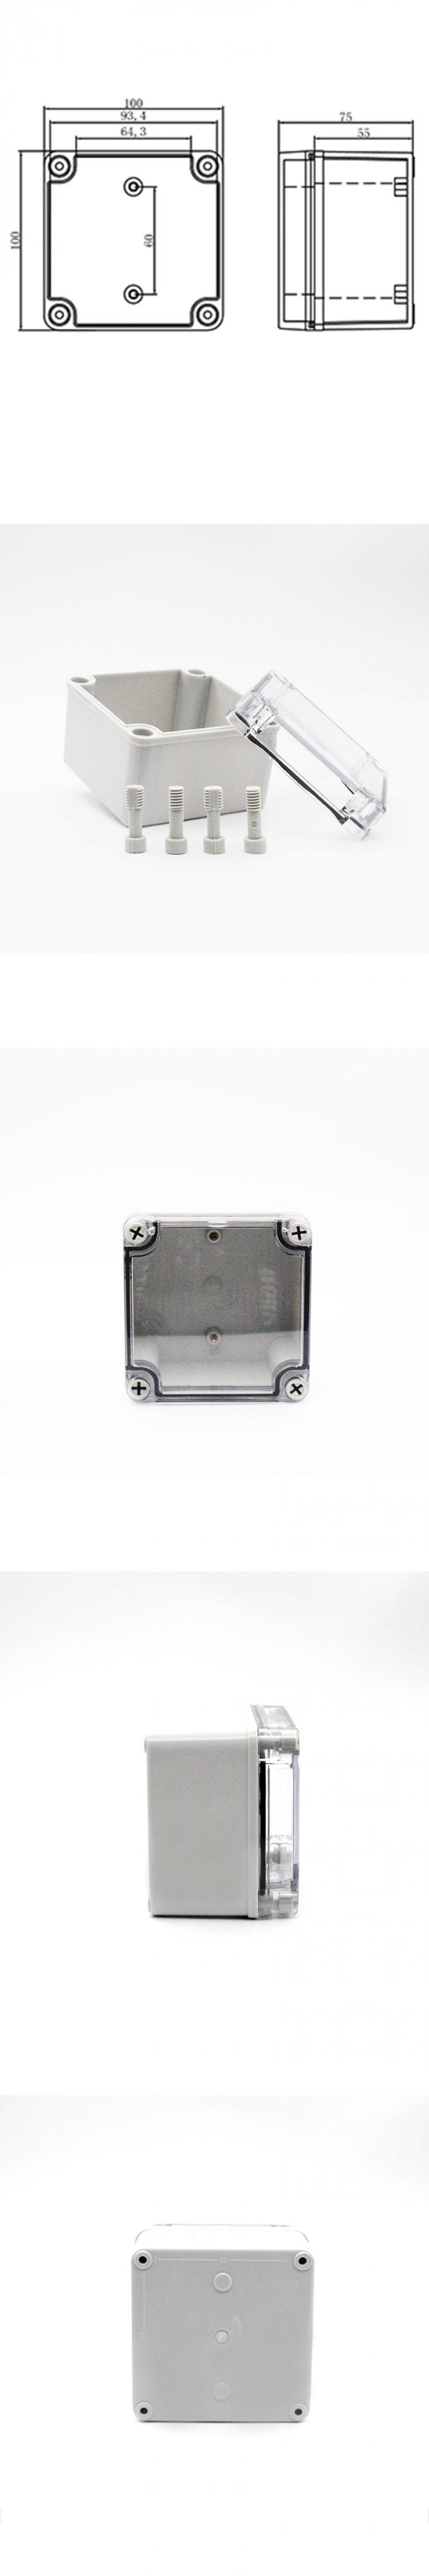 Square Waterproof Junction Box , Outdoor Electrical Box Enclosure PC Cover